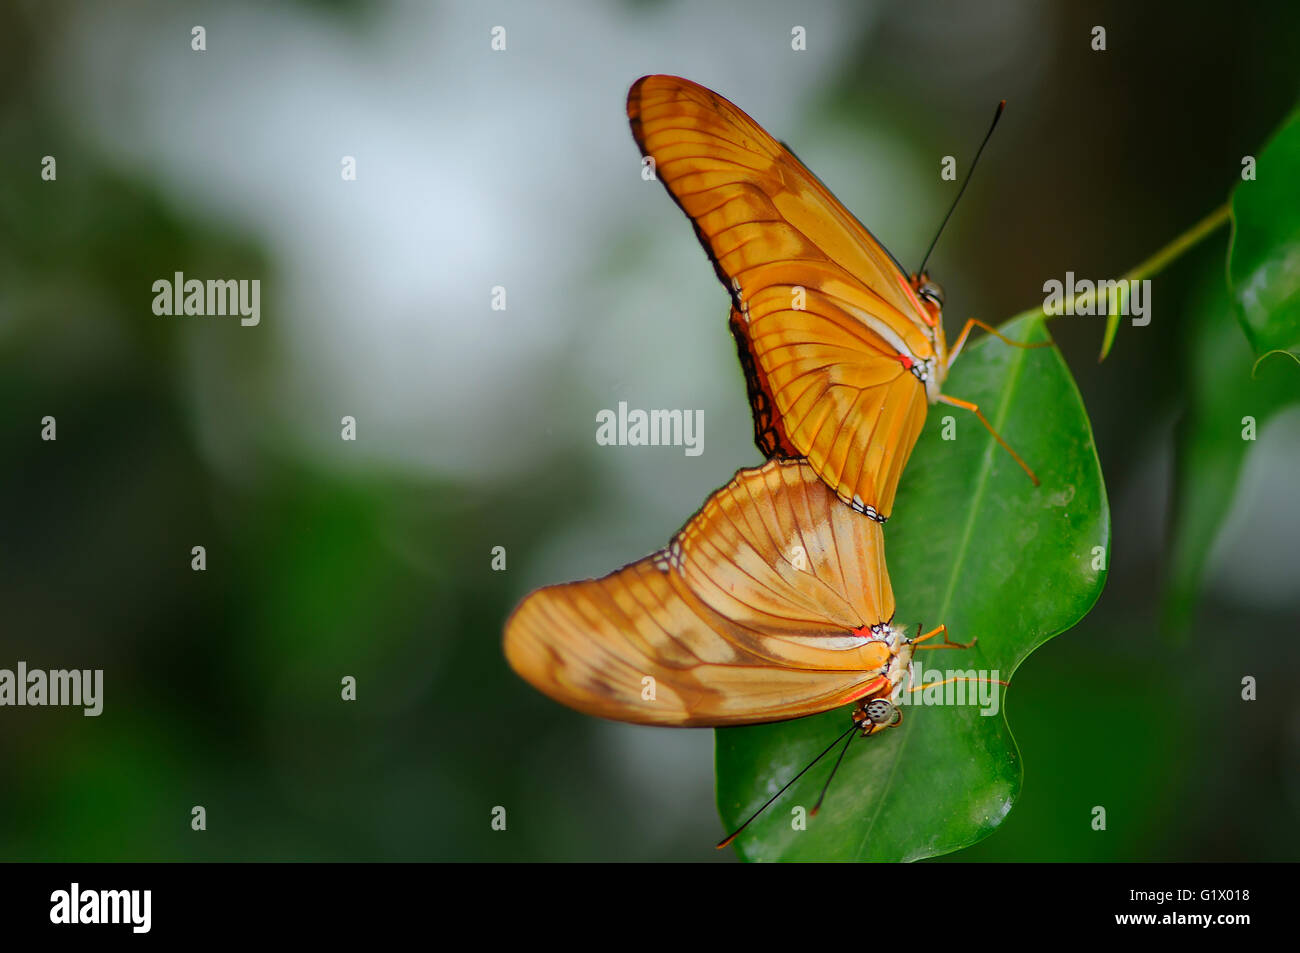 Butterfly pairing on plant - Stock Image